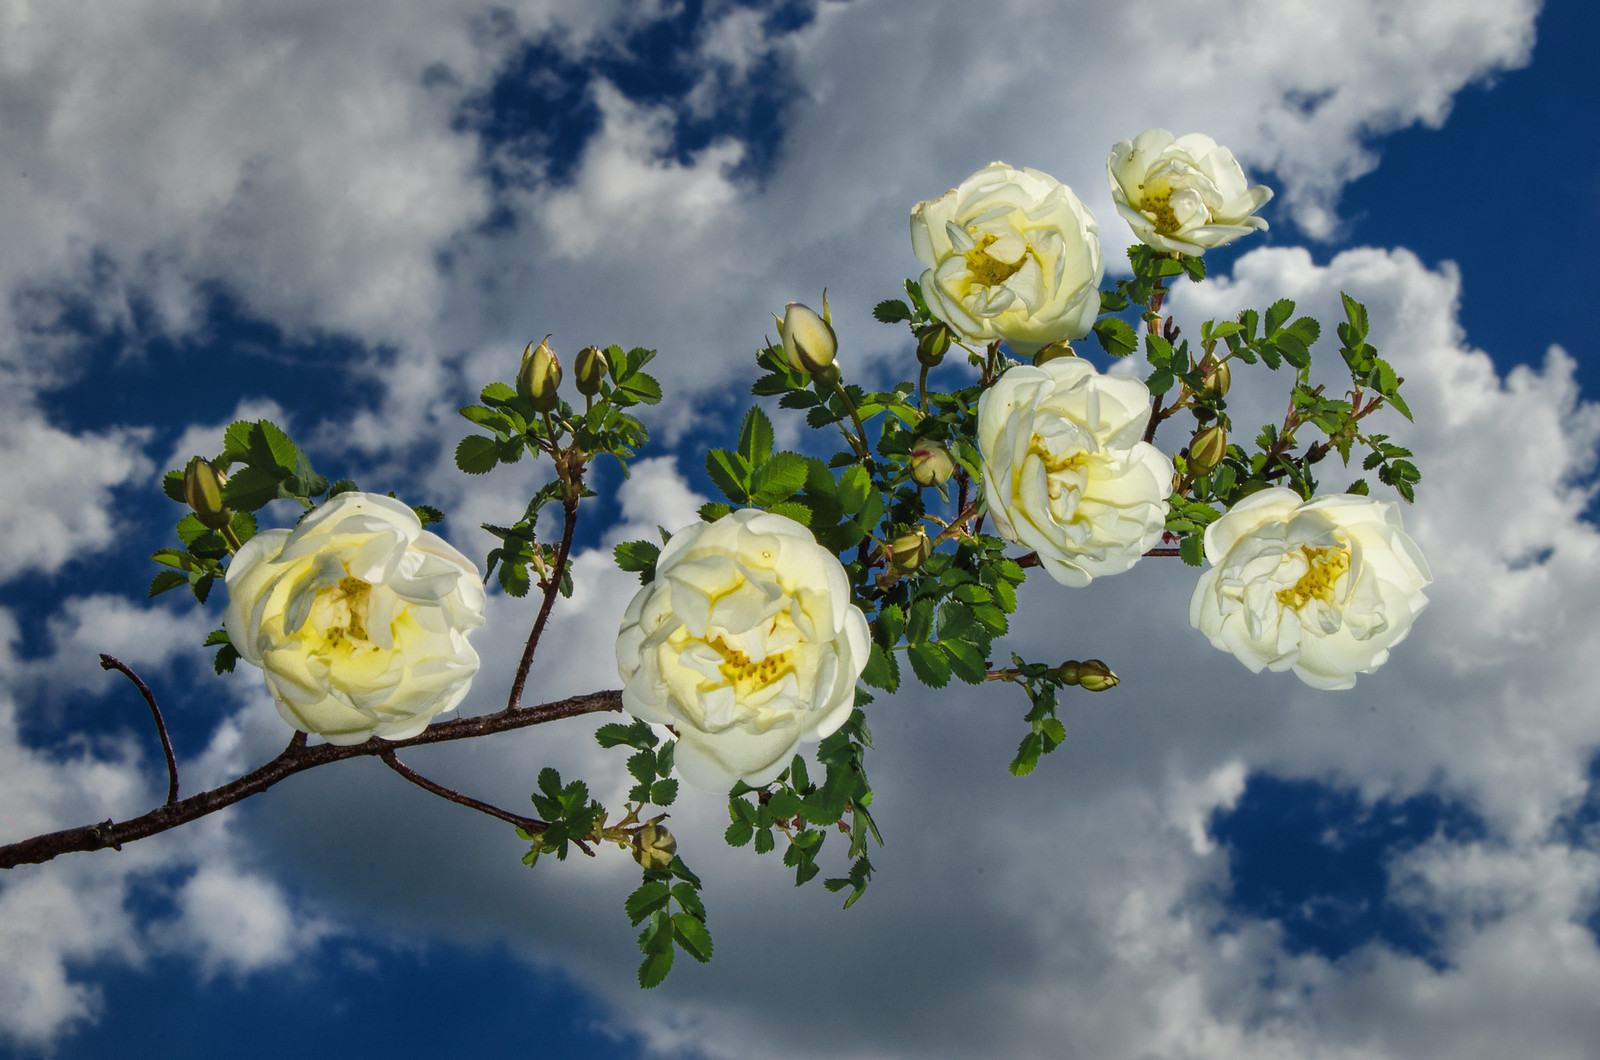 Белая дикая роза в небе с облаками (white wild rose in the sky with clouds)))  фотограф Челябинск